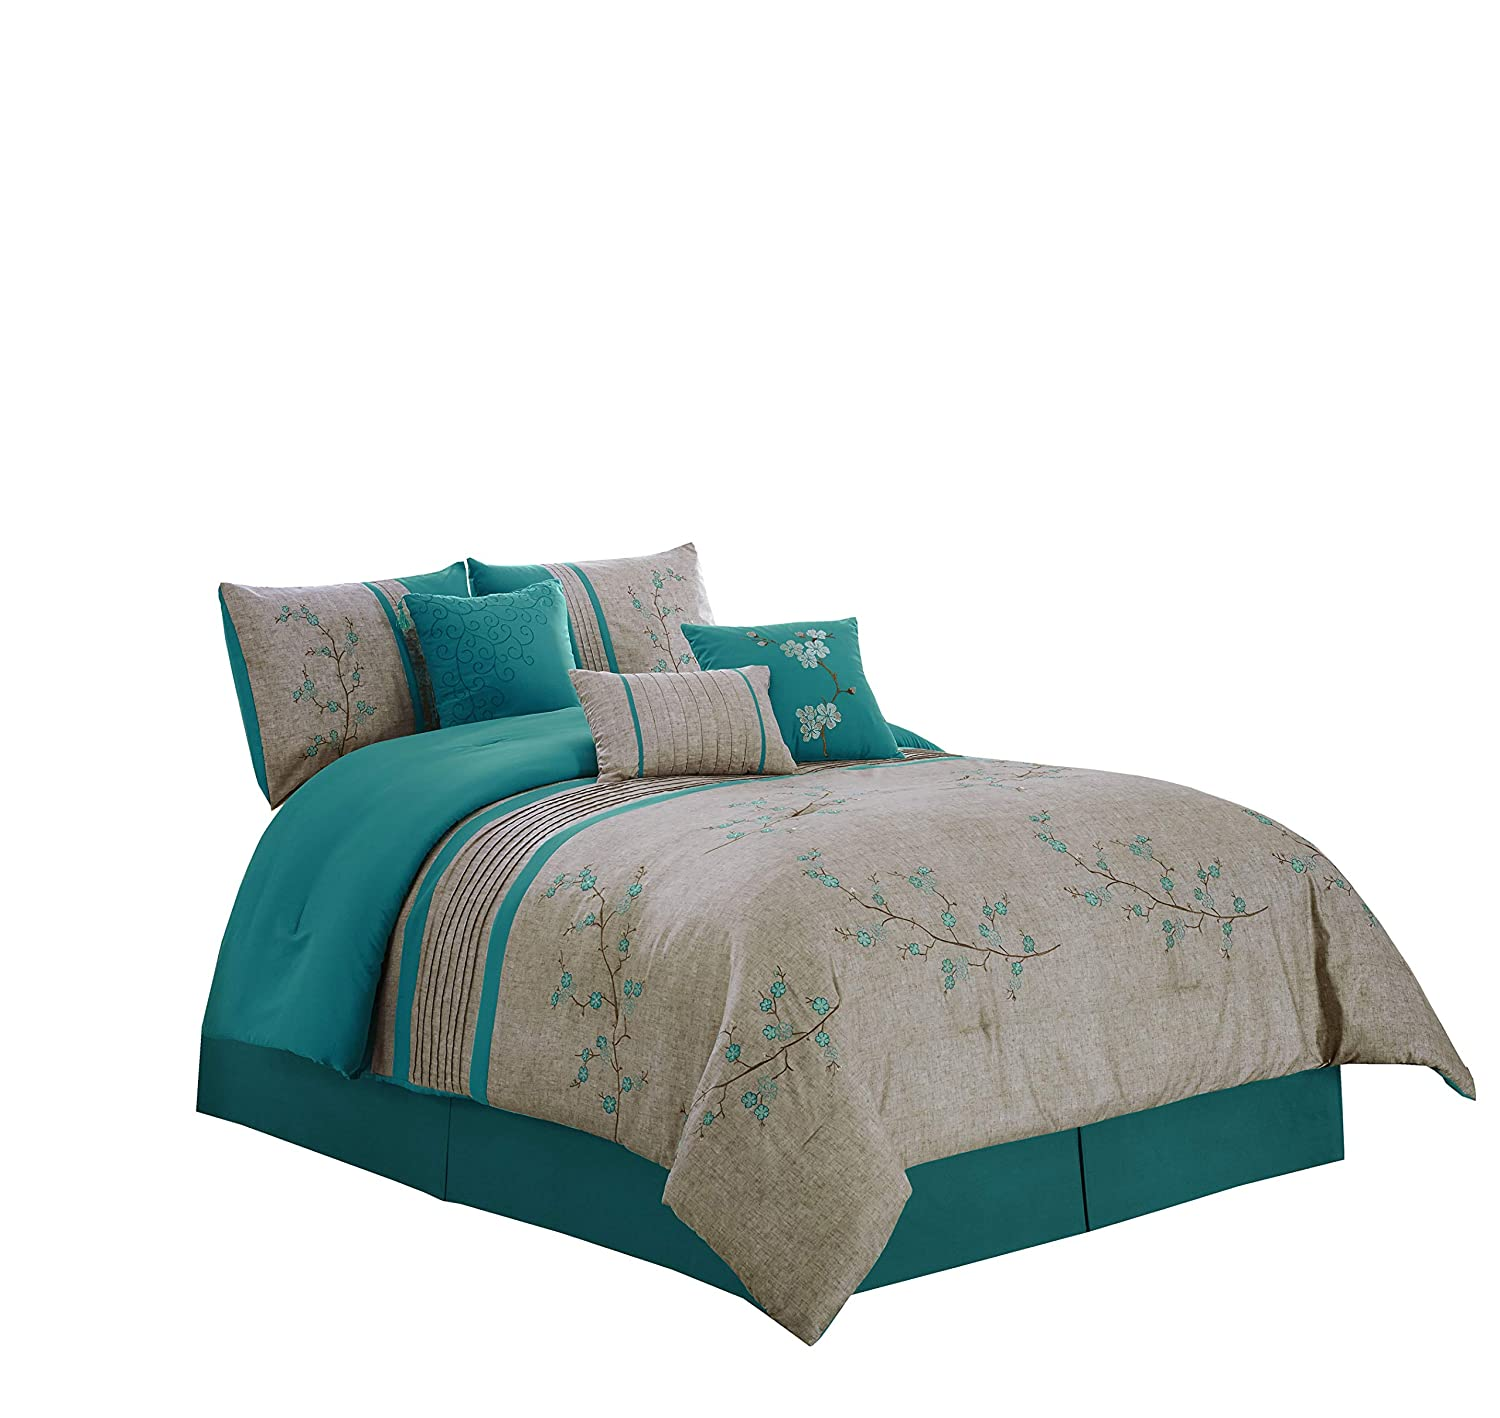 "Chezmoi Collection Noriko by Luxury 7-Piece Teal Cherry Blossoms Floral Embroidery Bedding Comforter Set (California King, 104"" x 96"")"